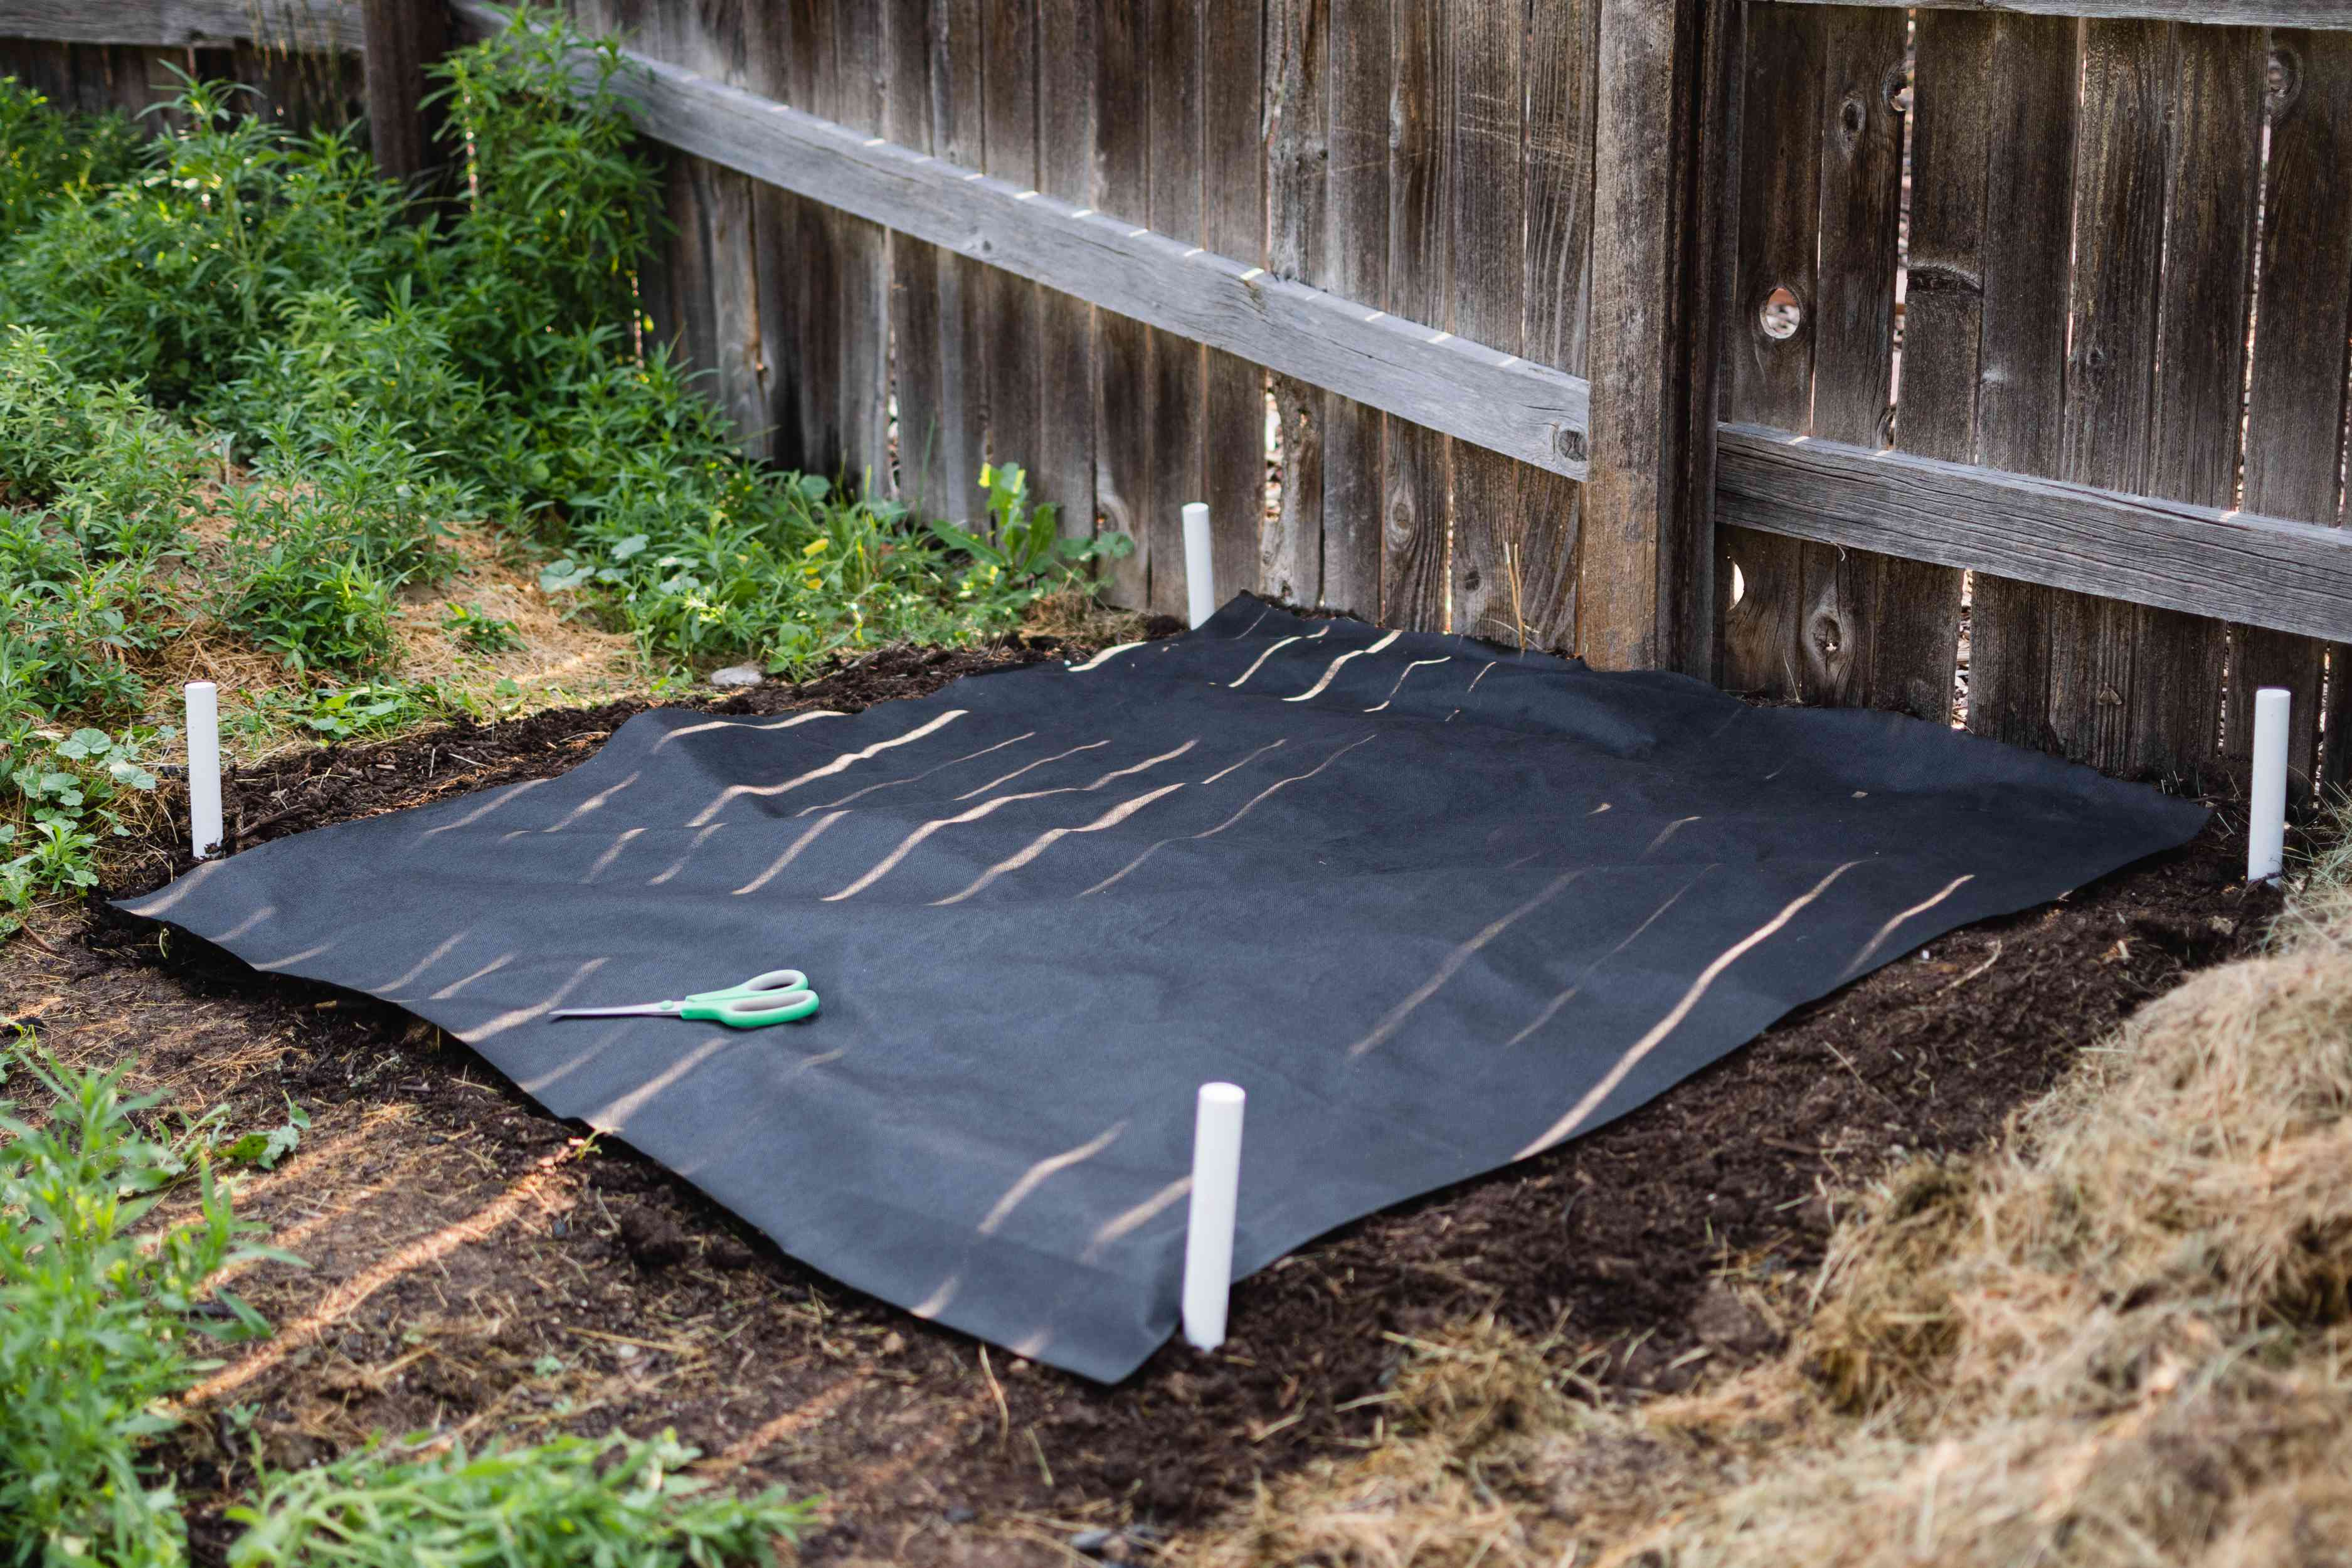 Weed cloth cut over composting pile location with green scissors on top